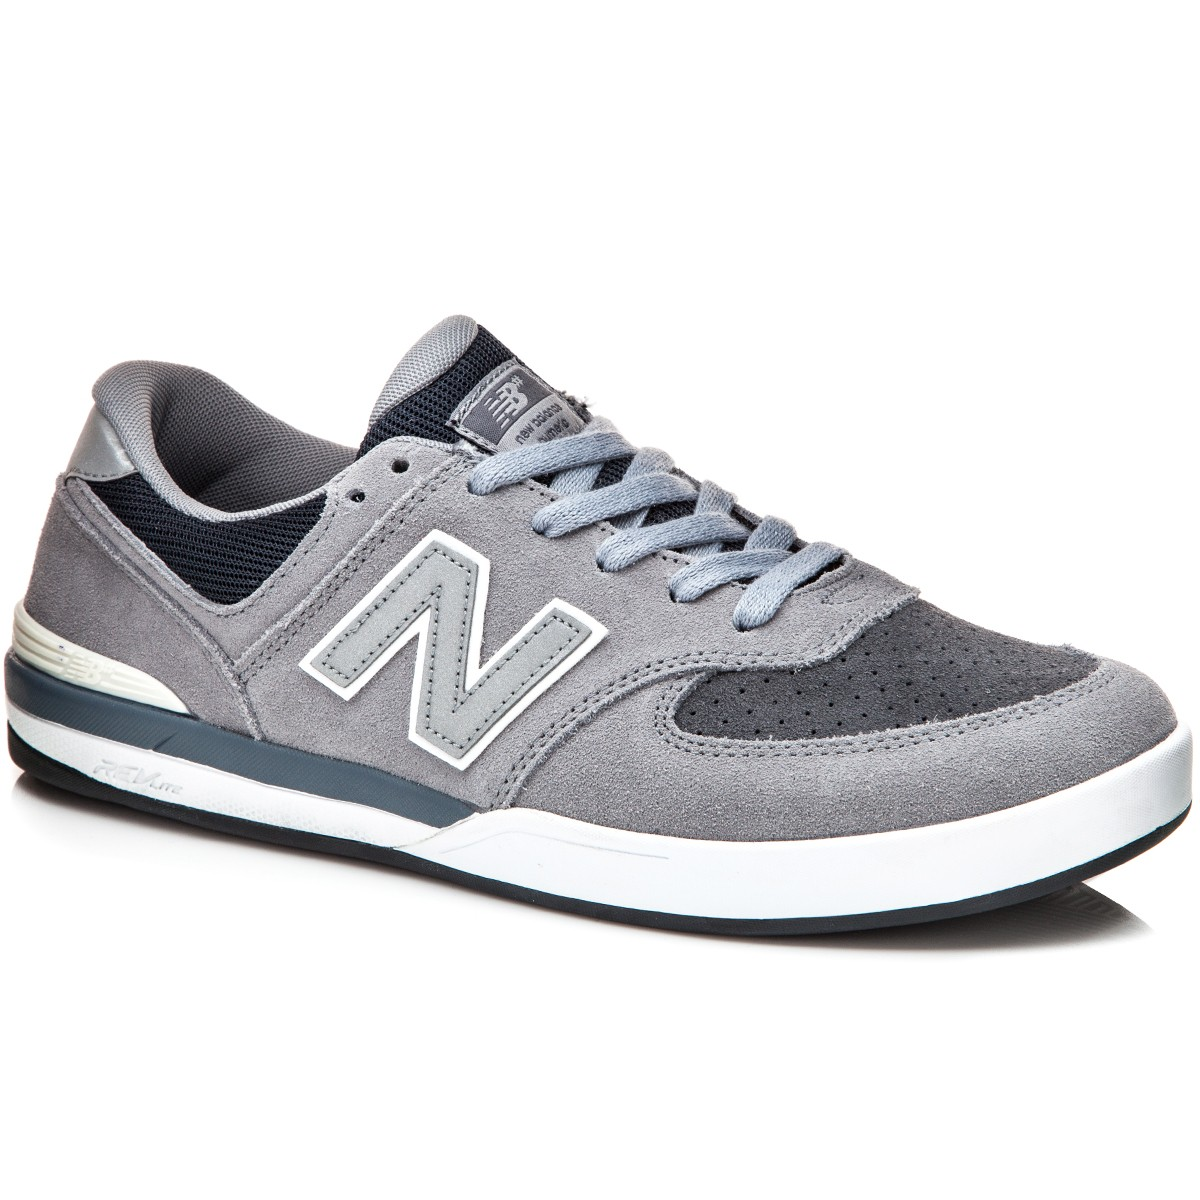 Cheap New Balance Shoes Canada